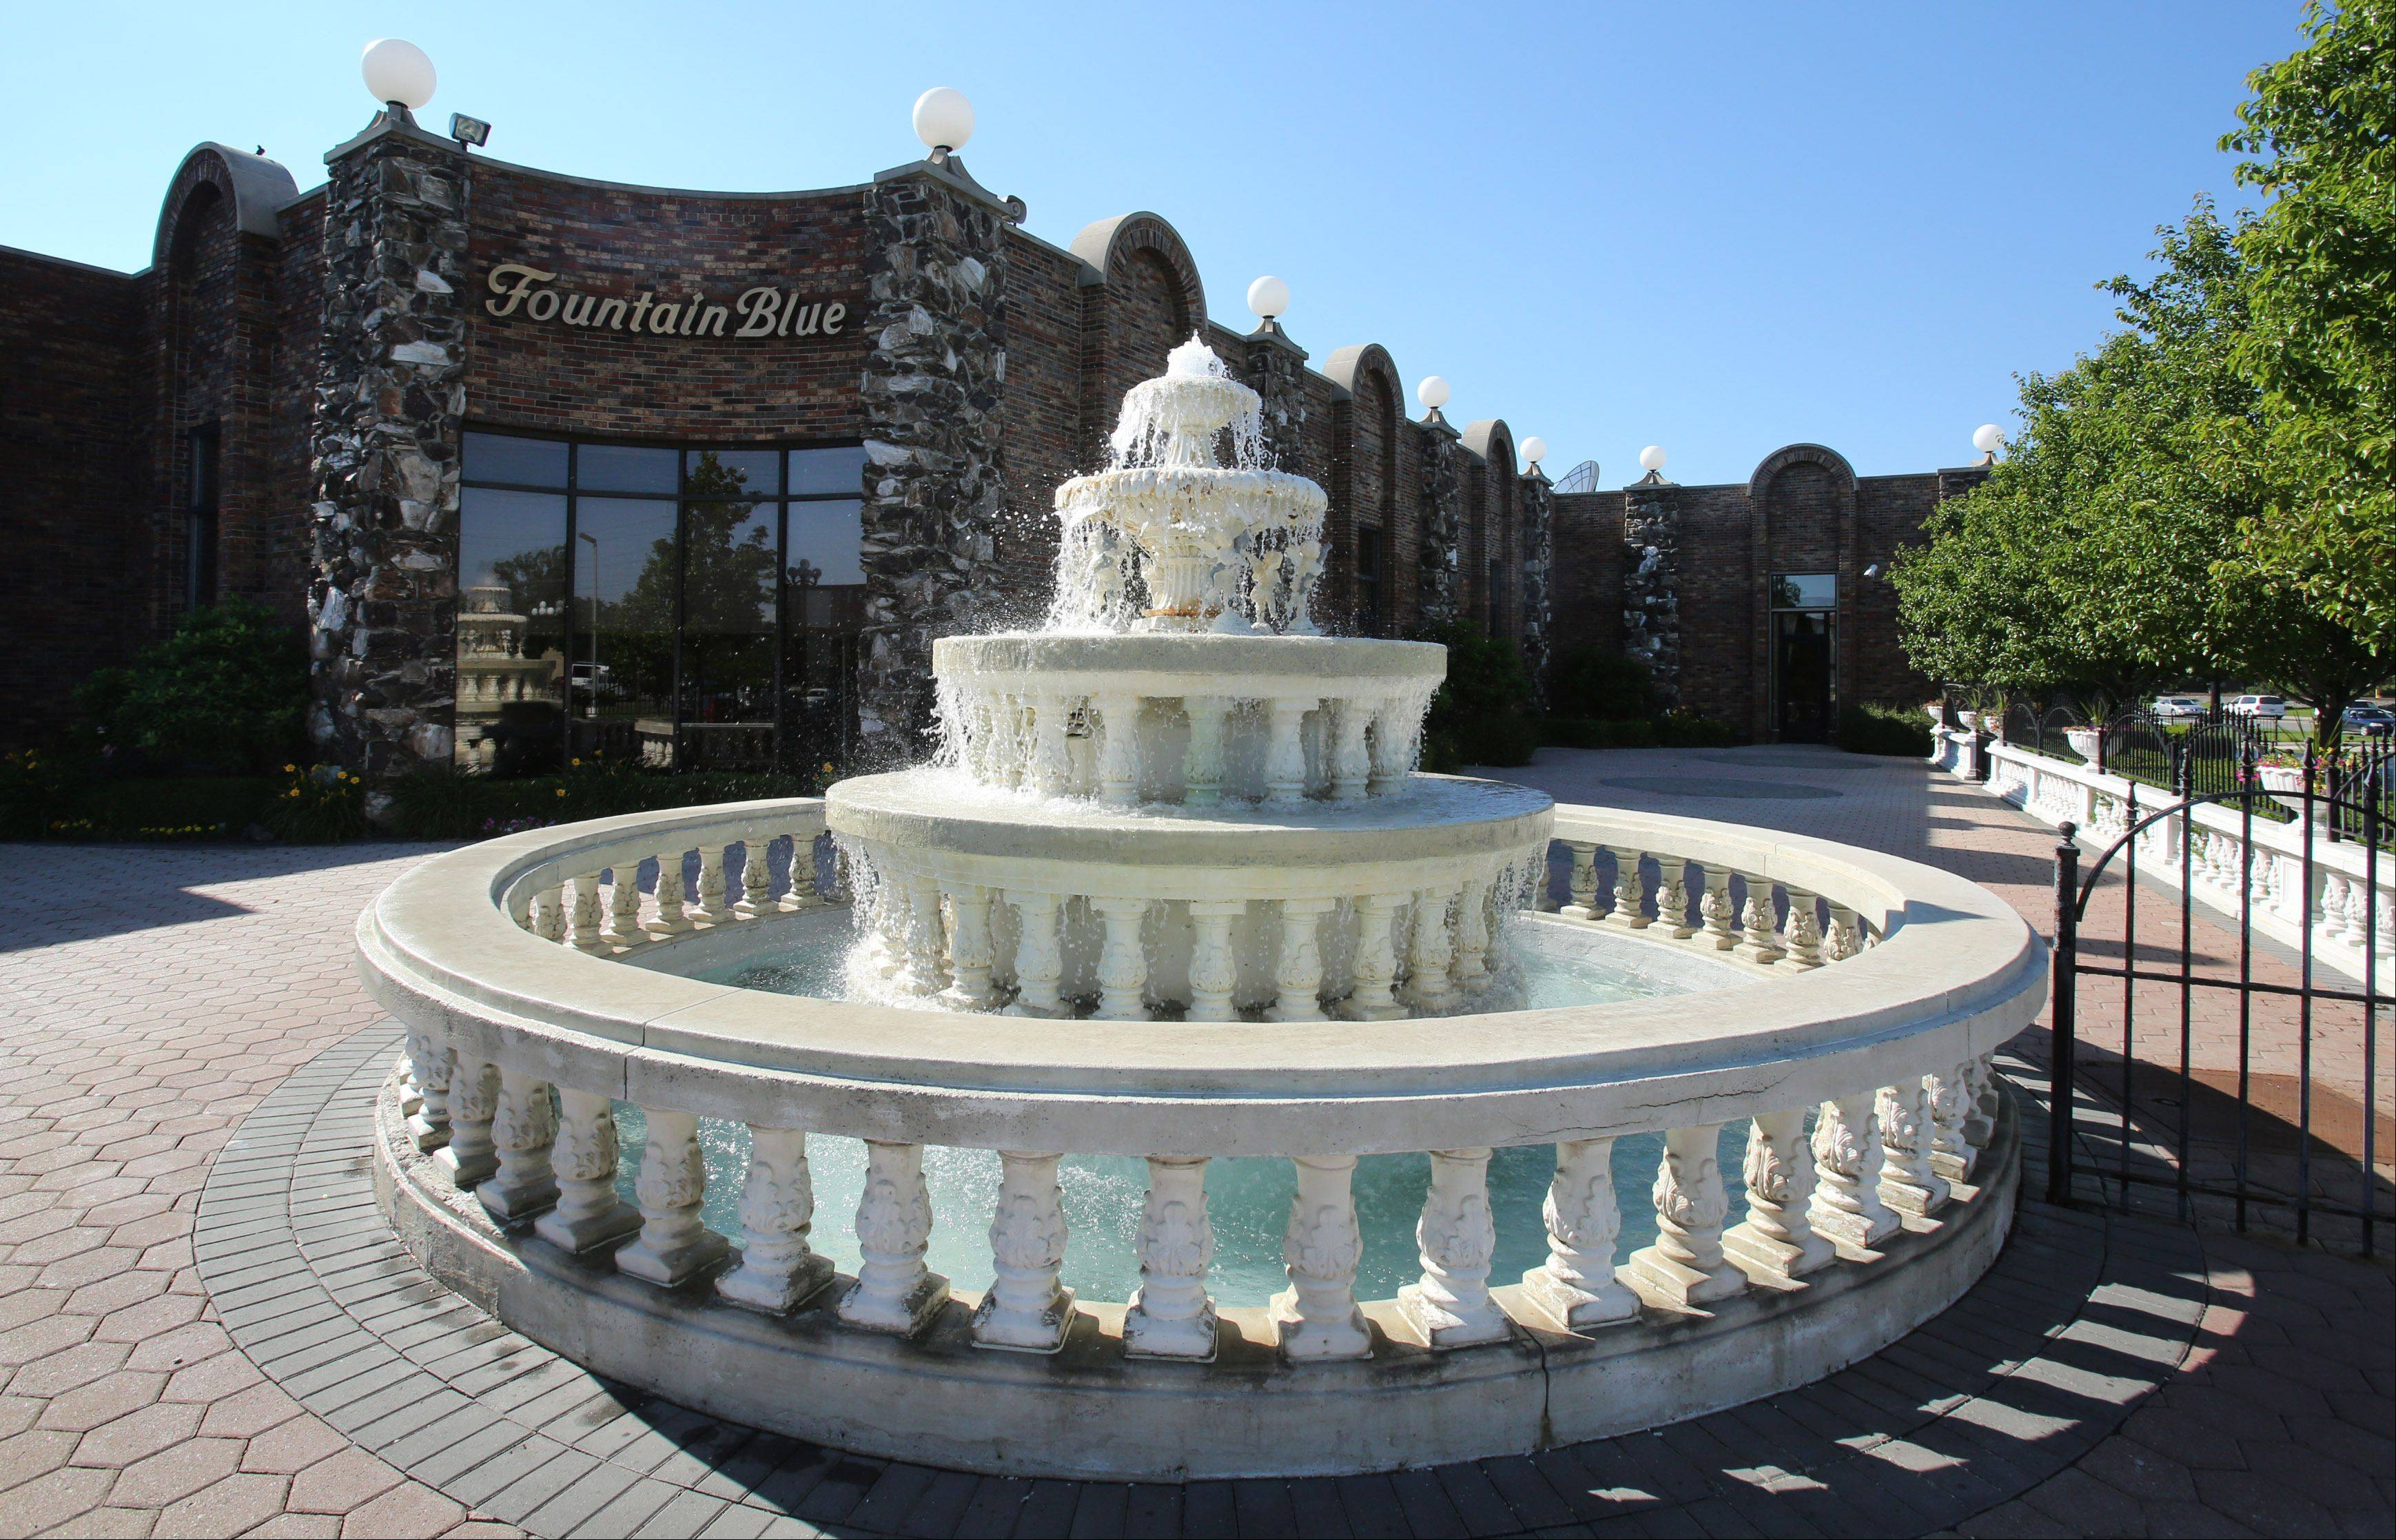 Fountain Blue Banquets & Conference Center in Des Plaines on June 18, 2013.